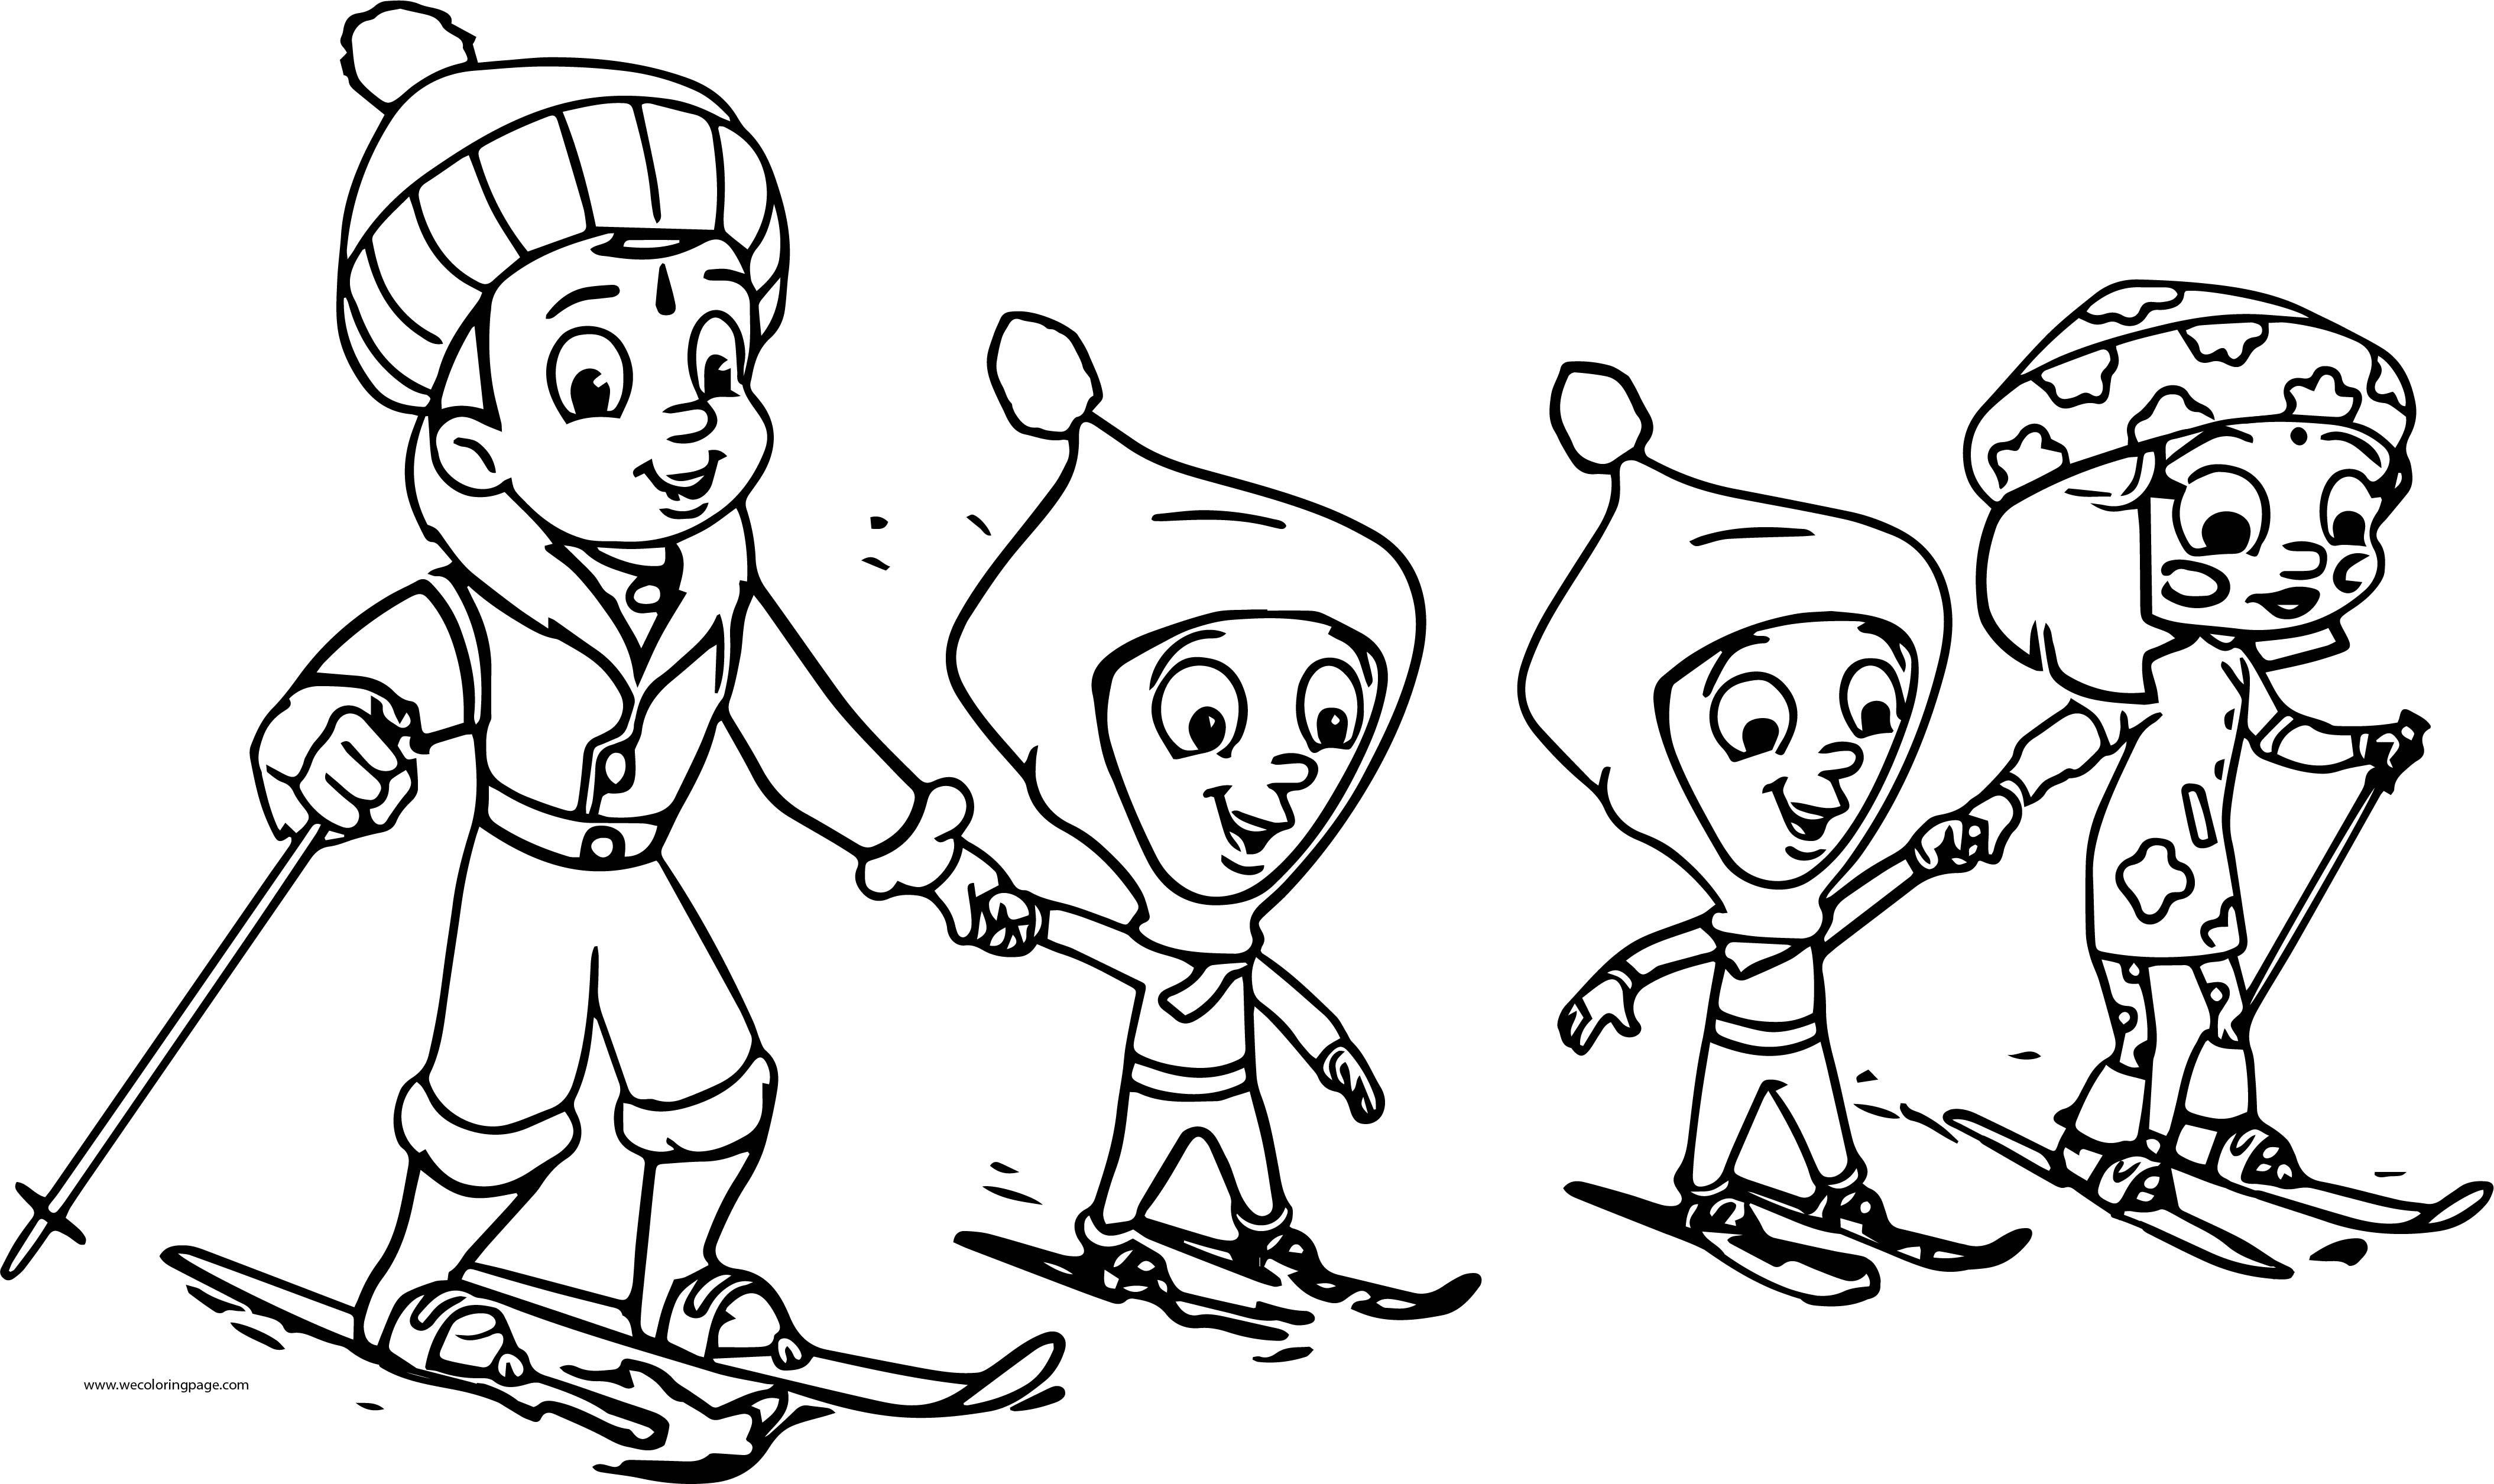 Chhota Bheem Slide With Friends Snow Coloring Page